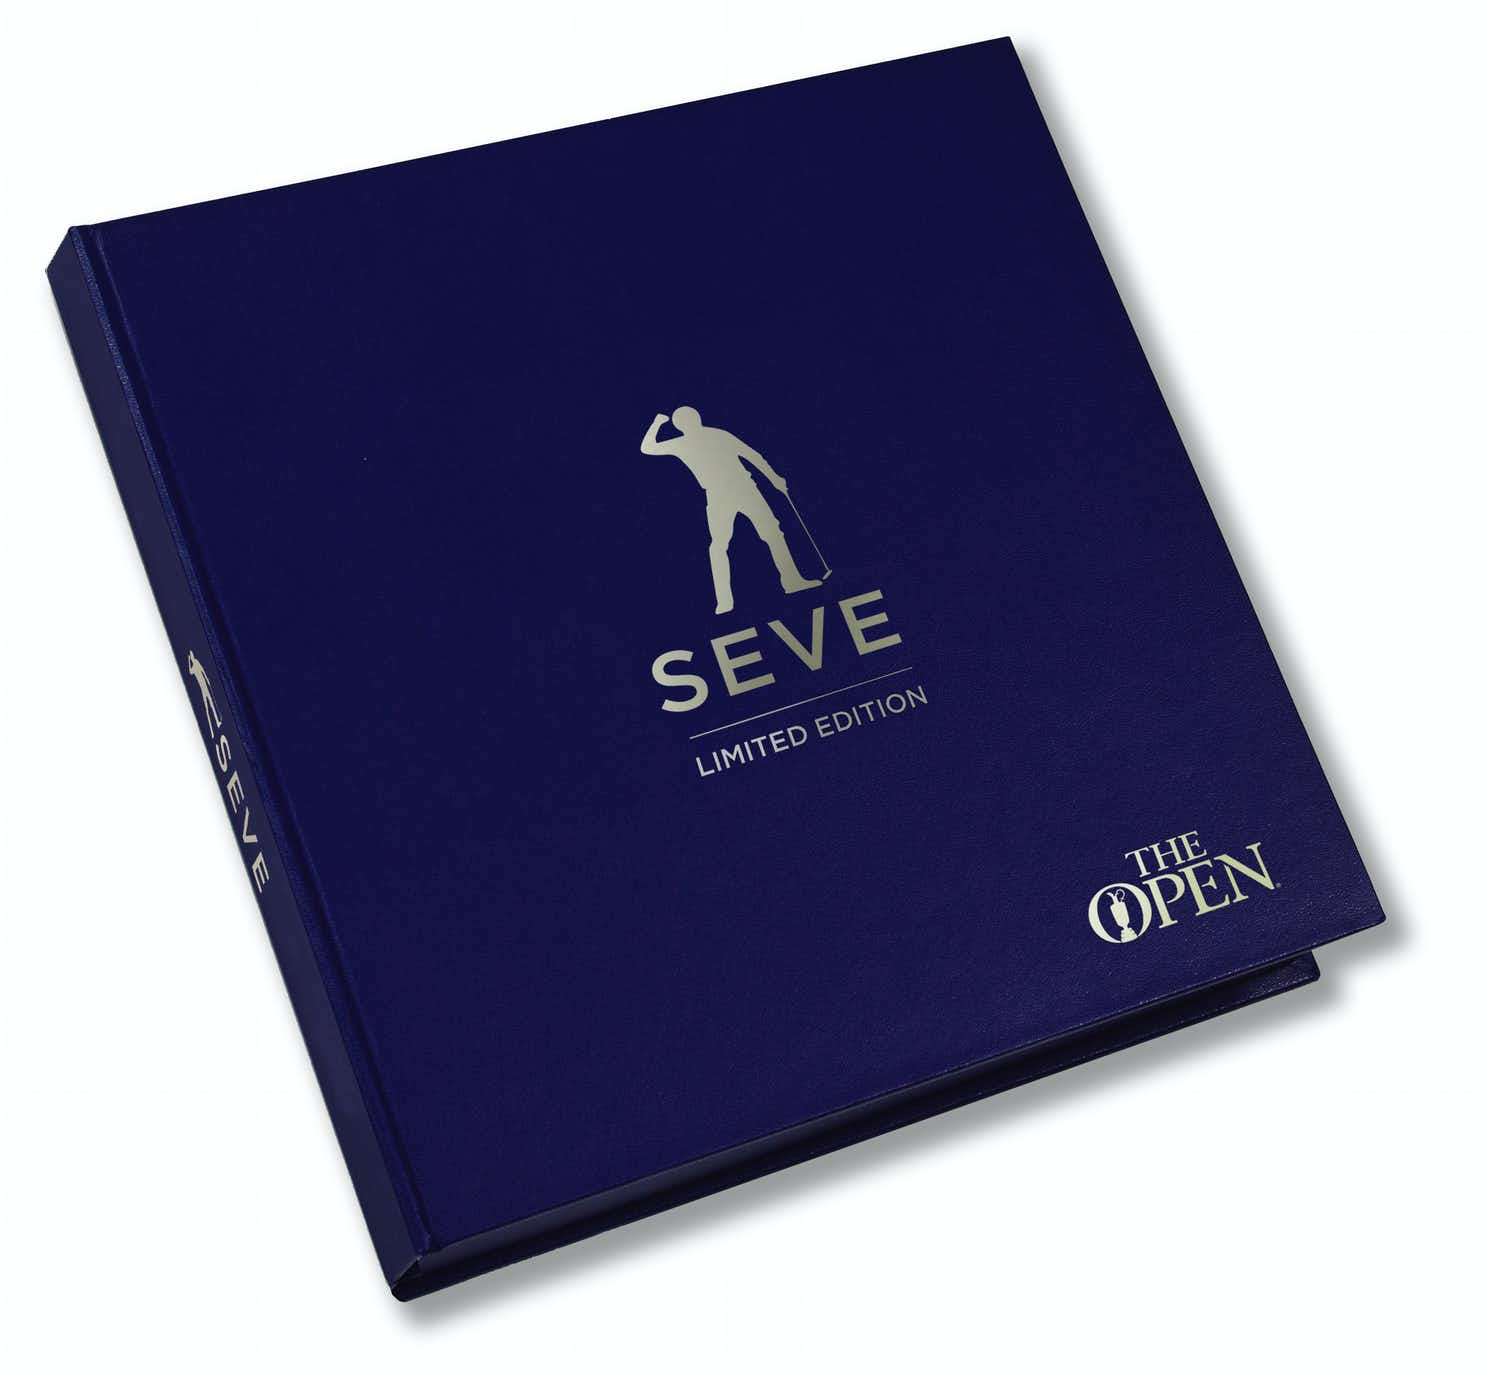 Seve: His Life Through The Lens (Limited Edition Boxed Version)